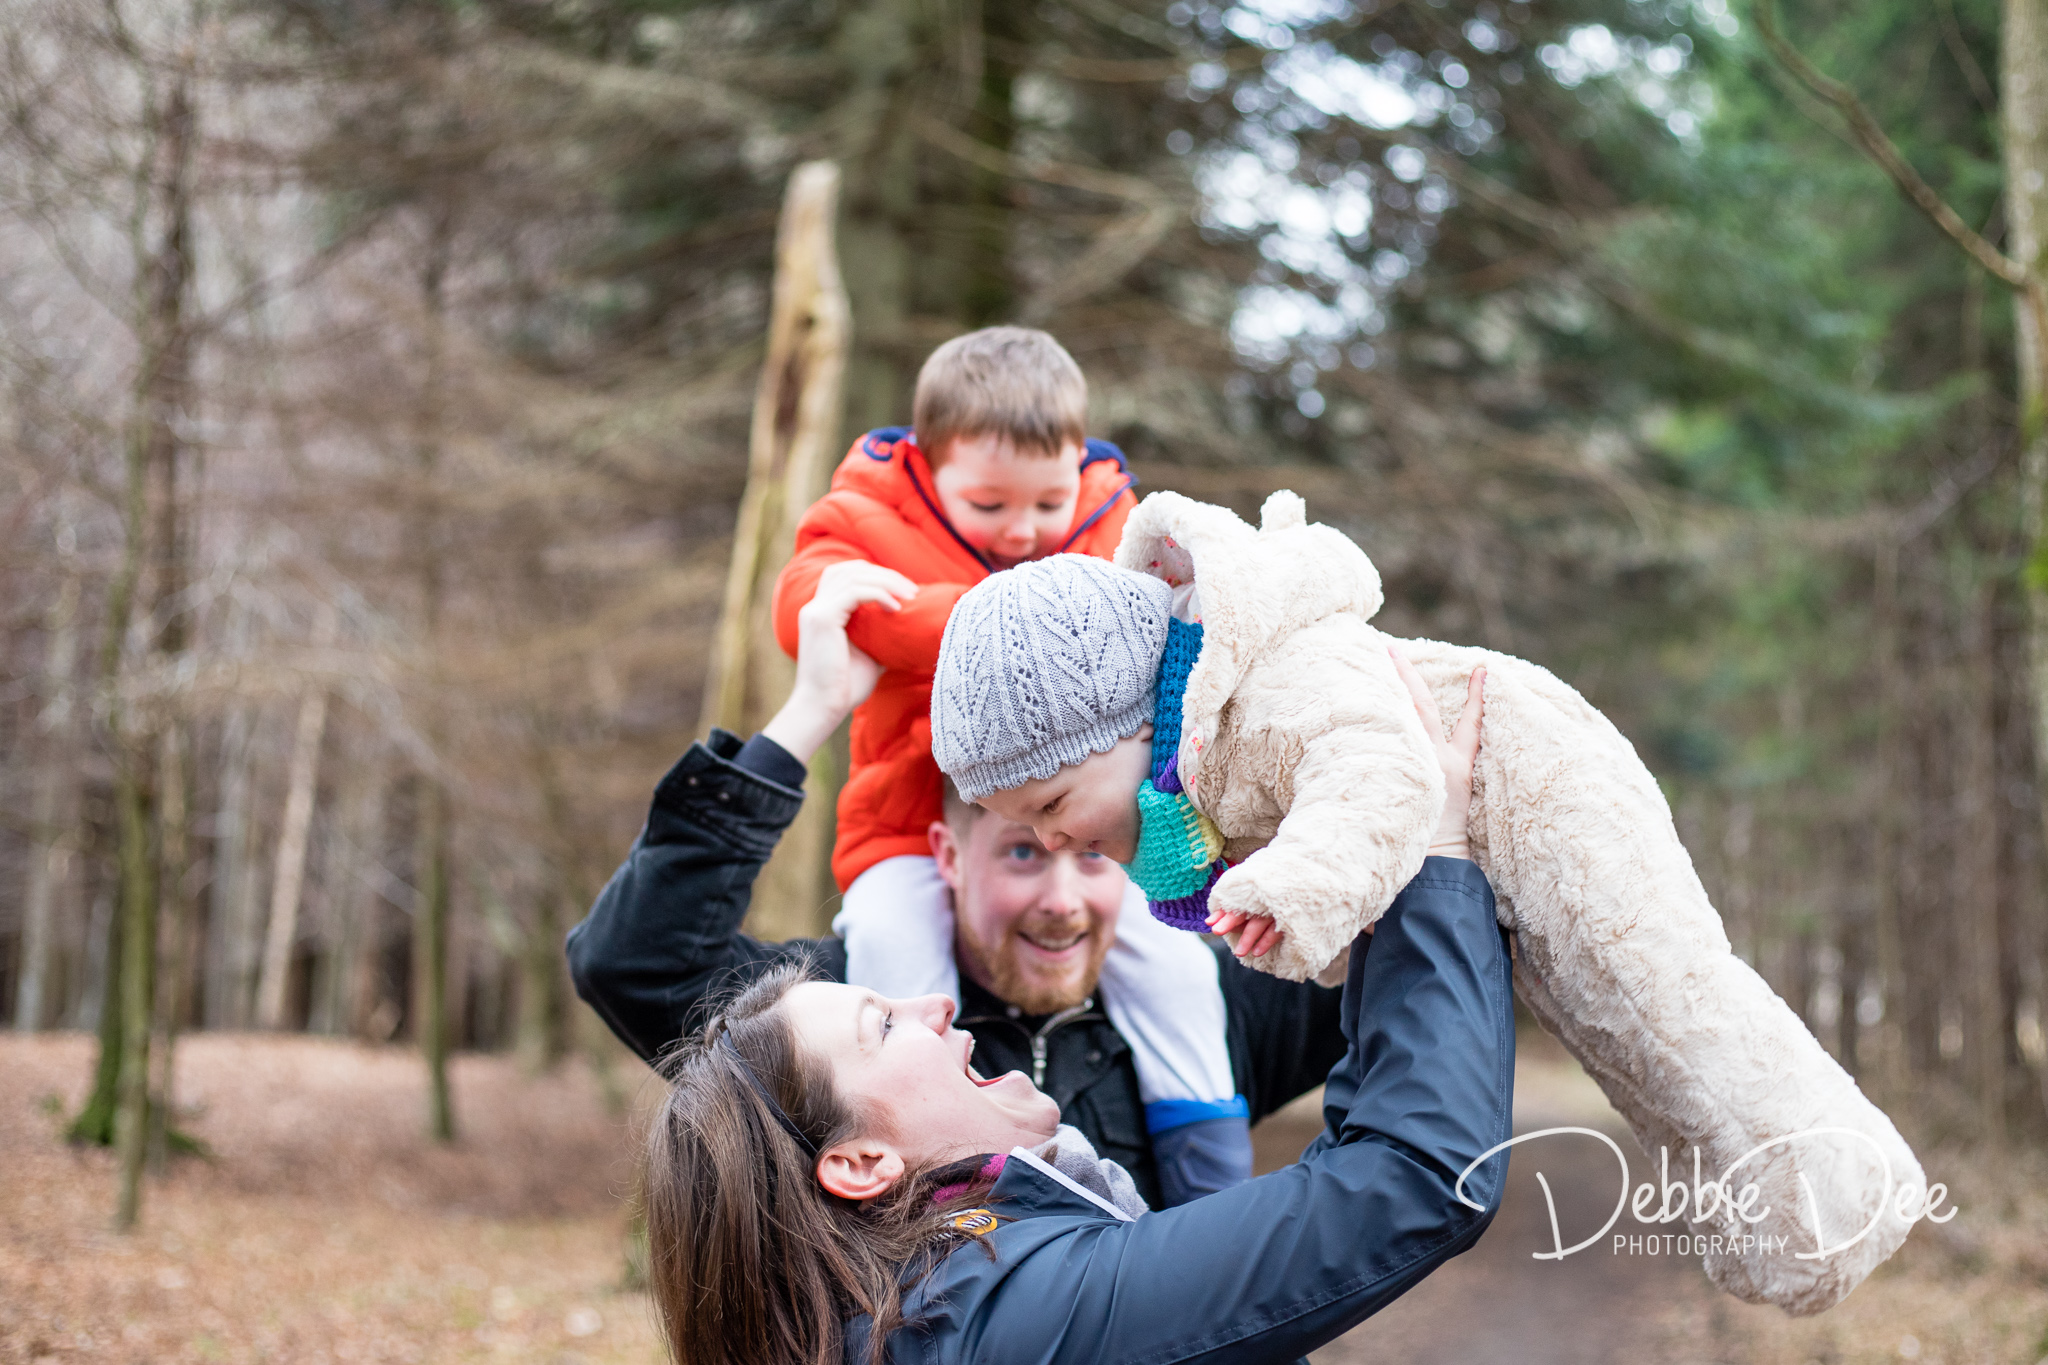 Family Photography Aberdeenshire - Leith Hall Aberdeenshire - Debbie Dee Photography - Outdoor Family Photography Sessiom - mum lifting baby in the air